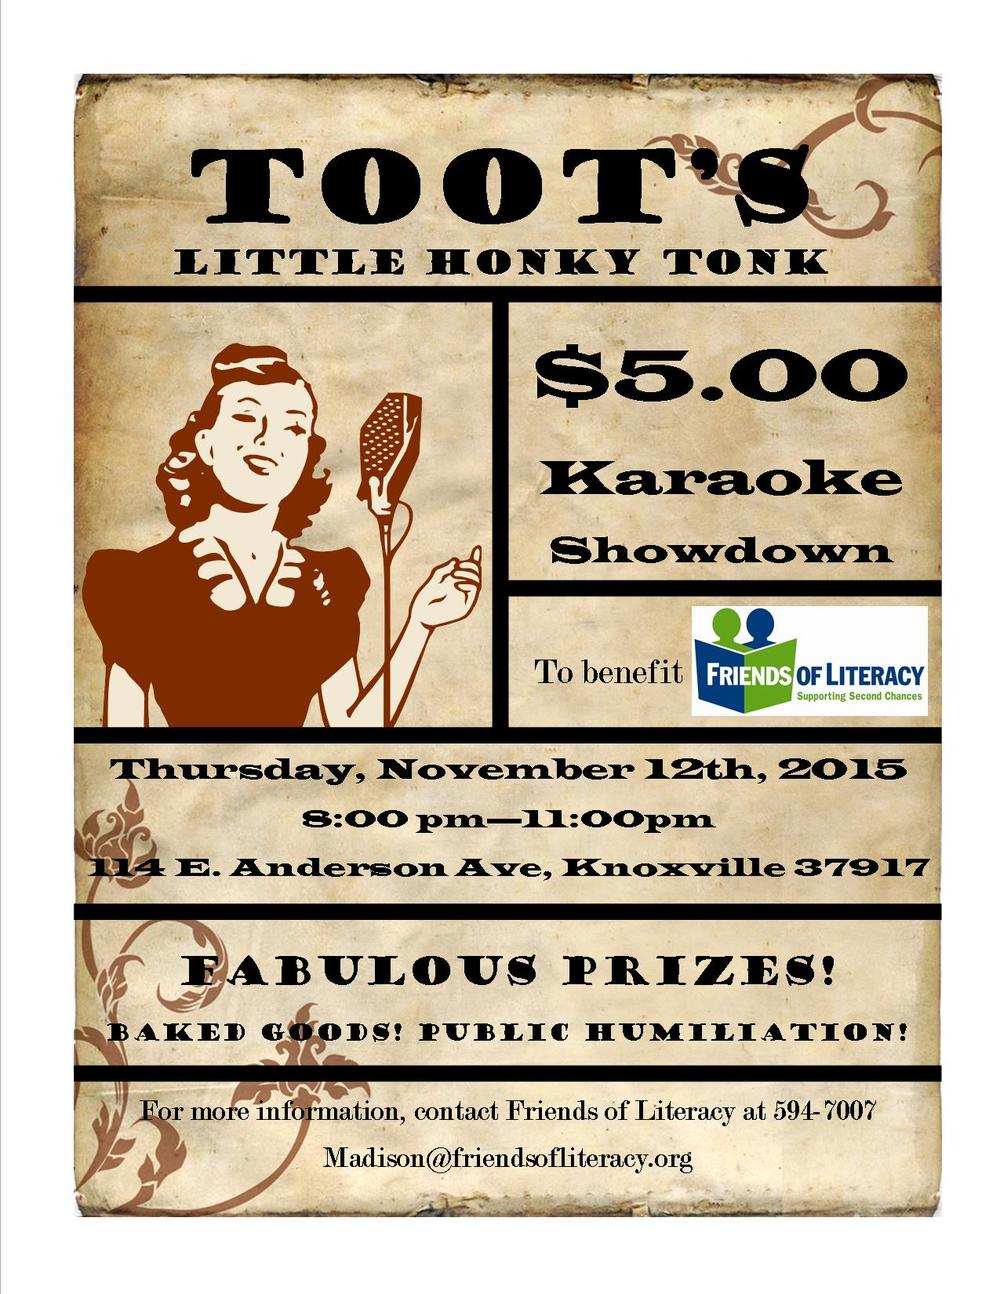 Toot's Little Honky Tonk, located at 114 E. Anderson Avenue, will host a karaoke contest to benefit Friends of Literacy on Thursday, November 12th, from 8:00pm-11:00pm. The evening will include a karaoke contest for a $5 entry fee, a bake sale, and Guerilla Karaoke. Prizes will be awarded for first, second, and third place as well as an honorable mention prize. Can't come to the Karaoke event but still want to help Friends of Literacy? Donate to the Bake Sale! Bake Sale donations must be brought to the Friends of Literacy office by 5:00PM Thursday November 12th. To schedule a time to drop off your goodies please call us at 865-549-7007 or email Madison@friendsofliteracy.org.